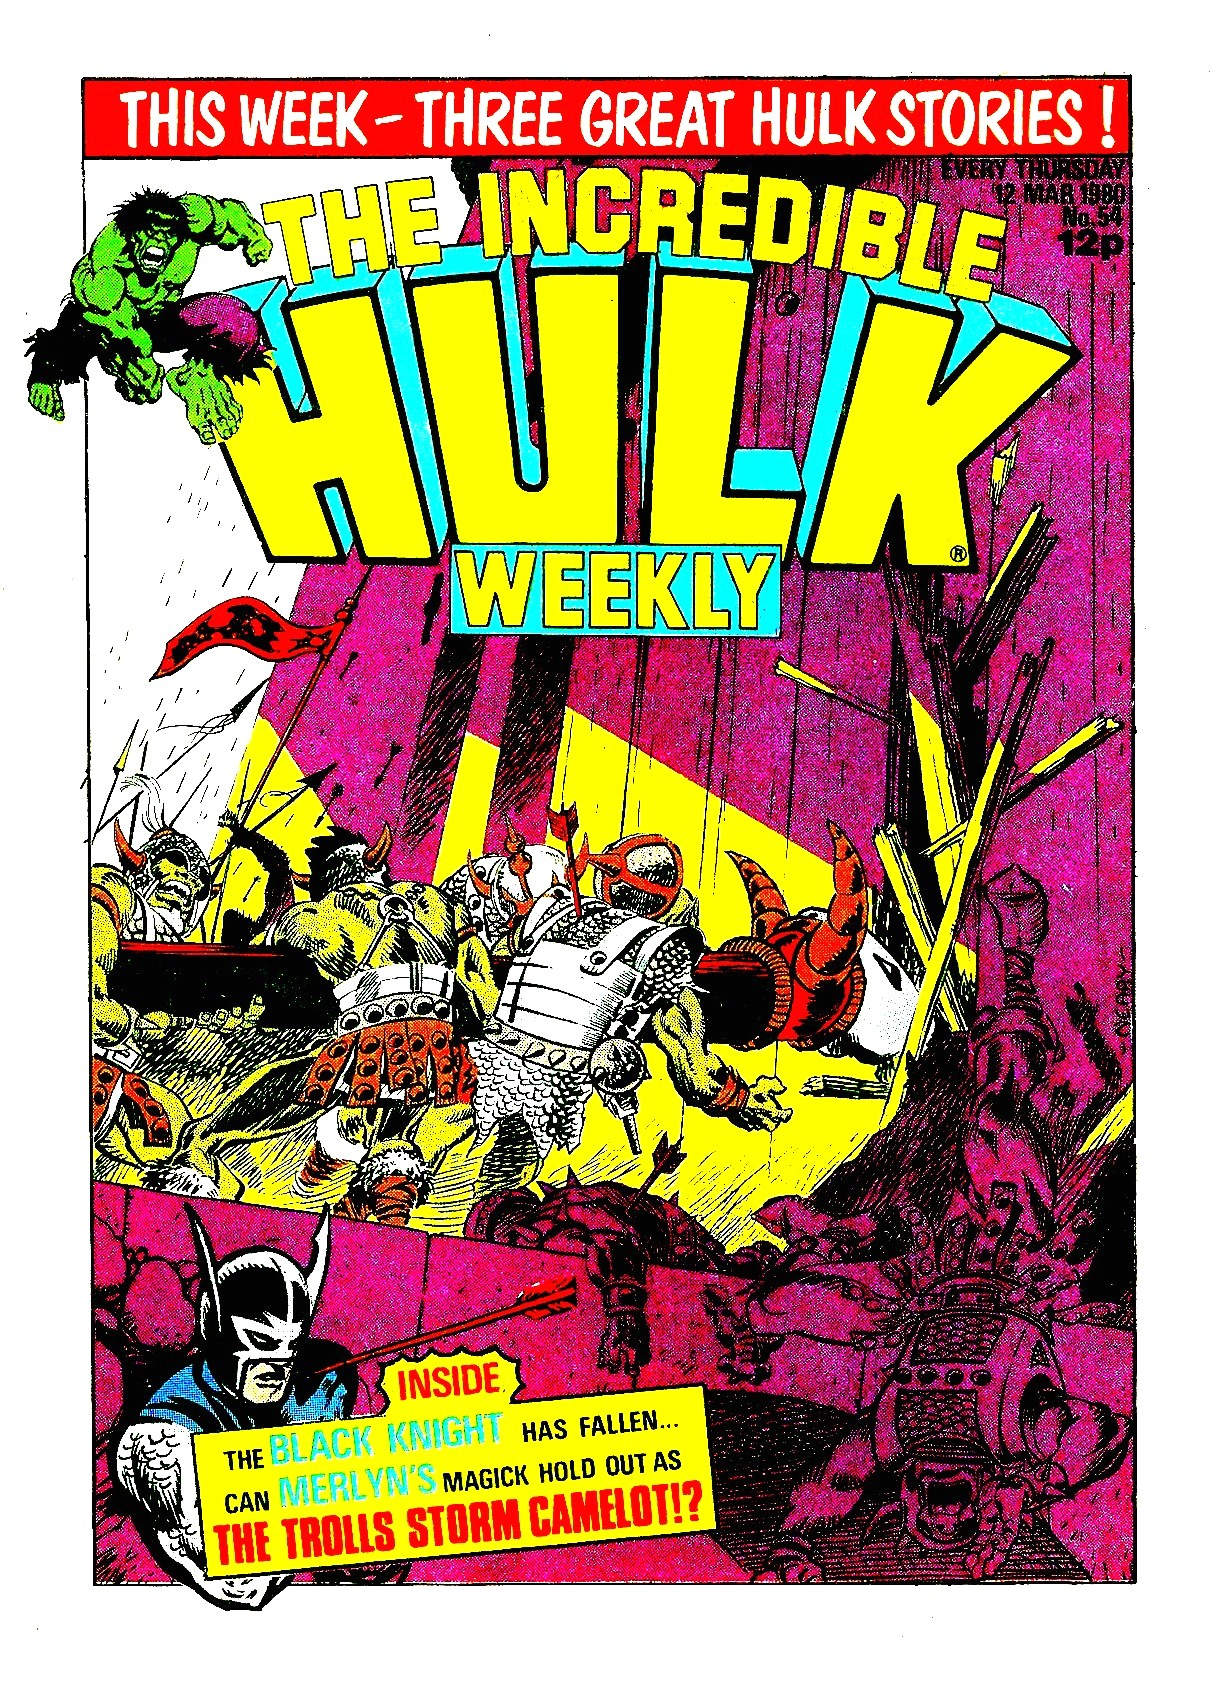 The Incredible Hulk Weekly 54 Page 1